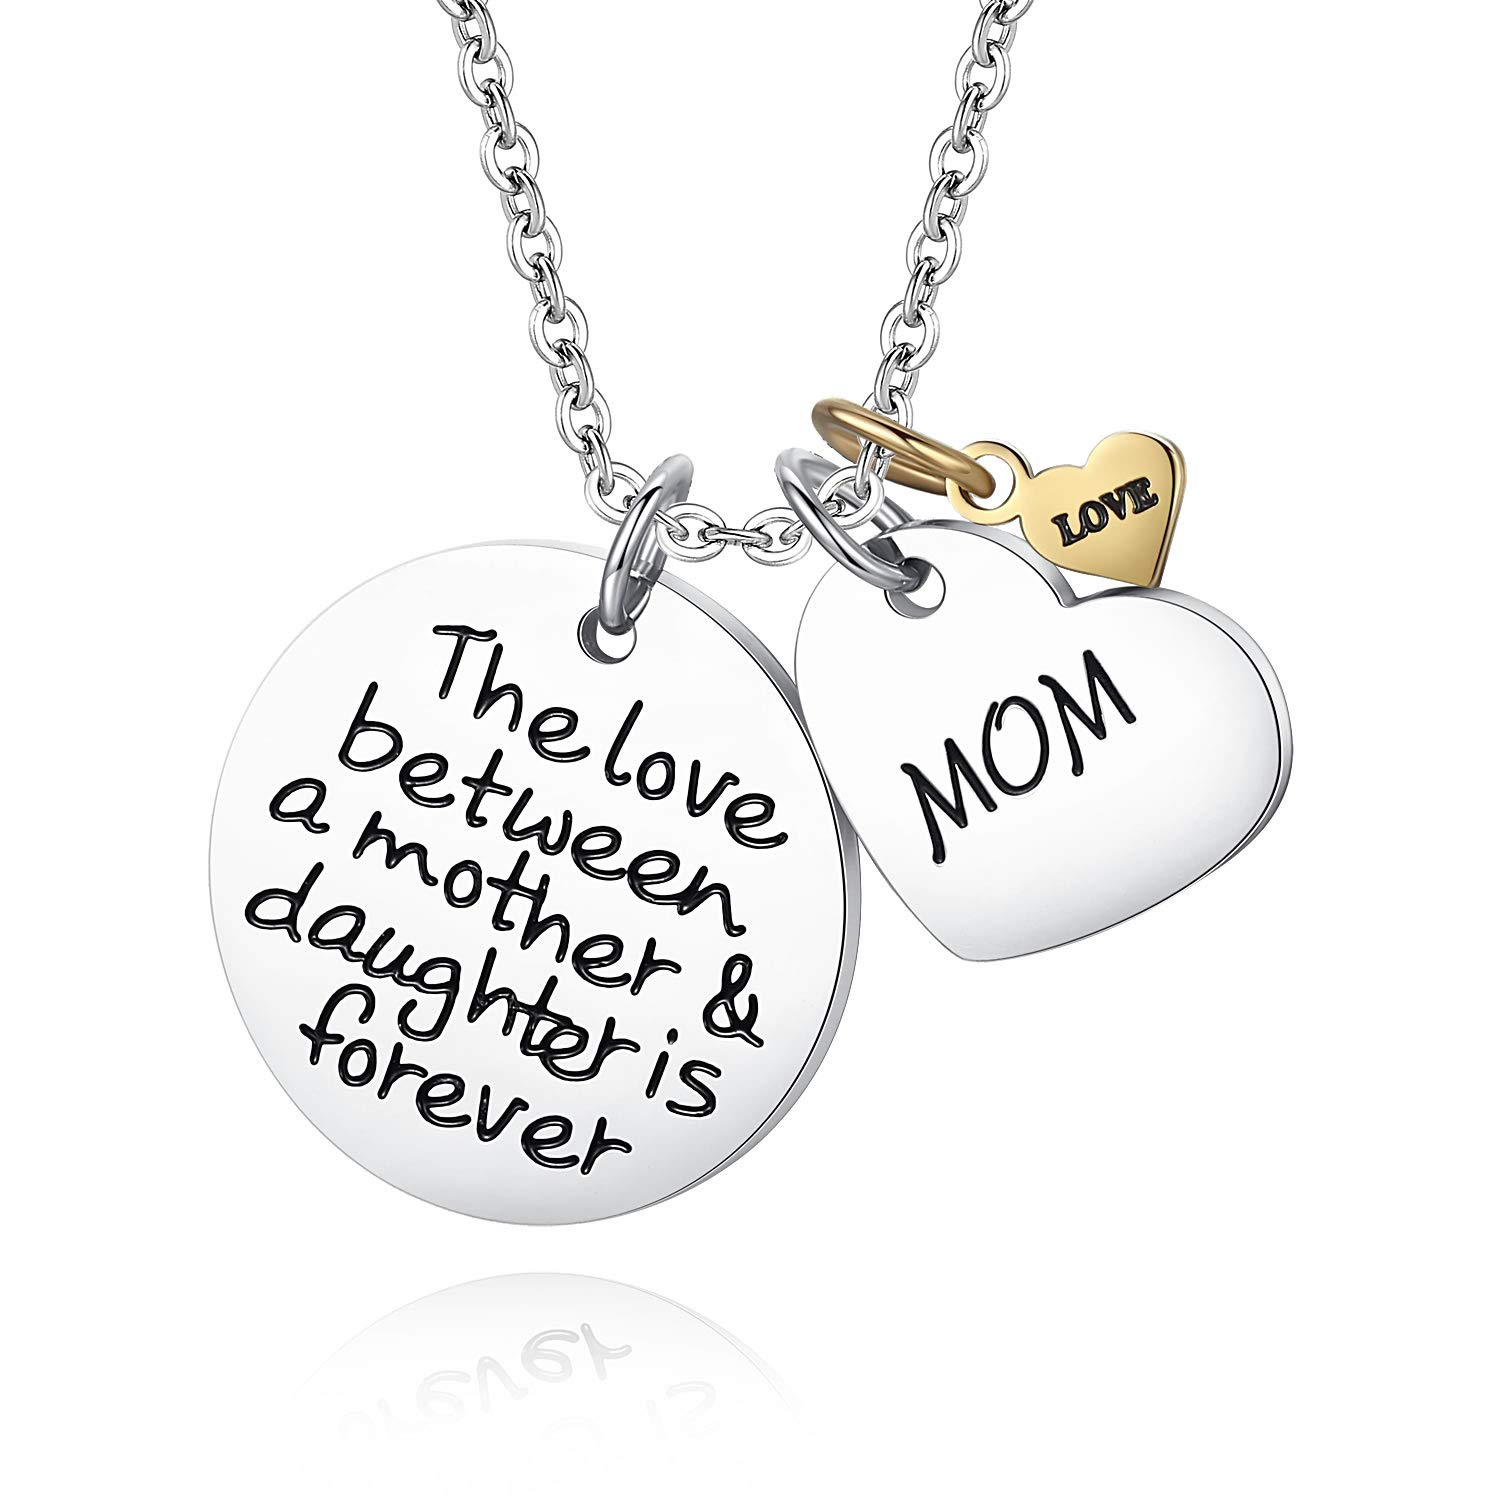 JSstudio Mom Birthday Gifts, Mother Daughter Stainless Steel Pendant Necklace Jewelry, The Love Between A Mother Daughter is Forever, Gift Mom Mother Women from Daughter, Mother Daughter Gifts